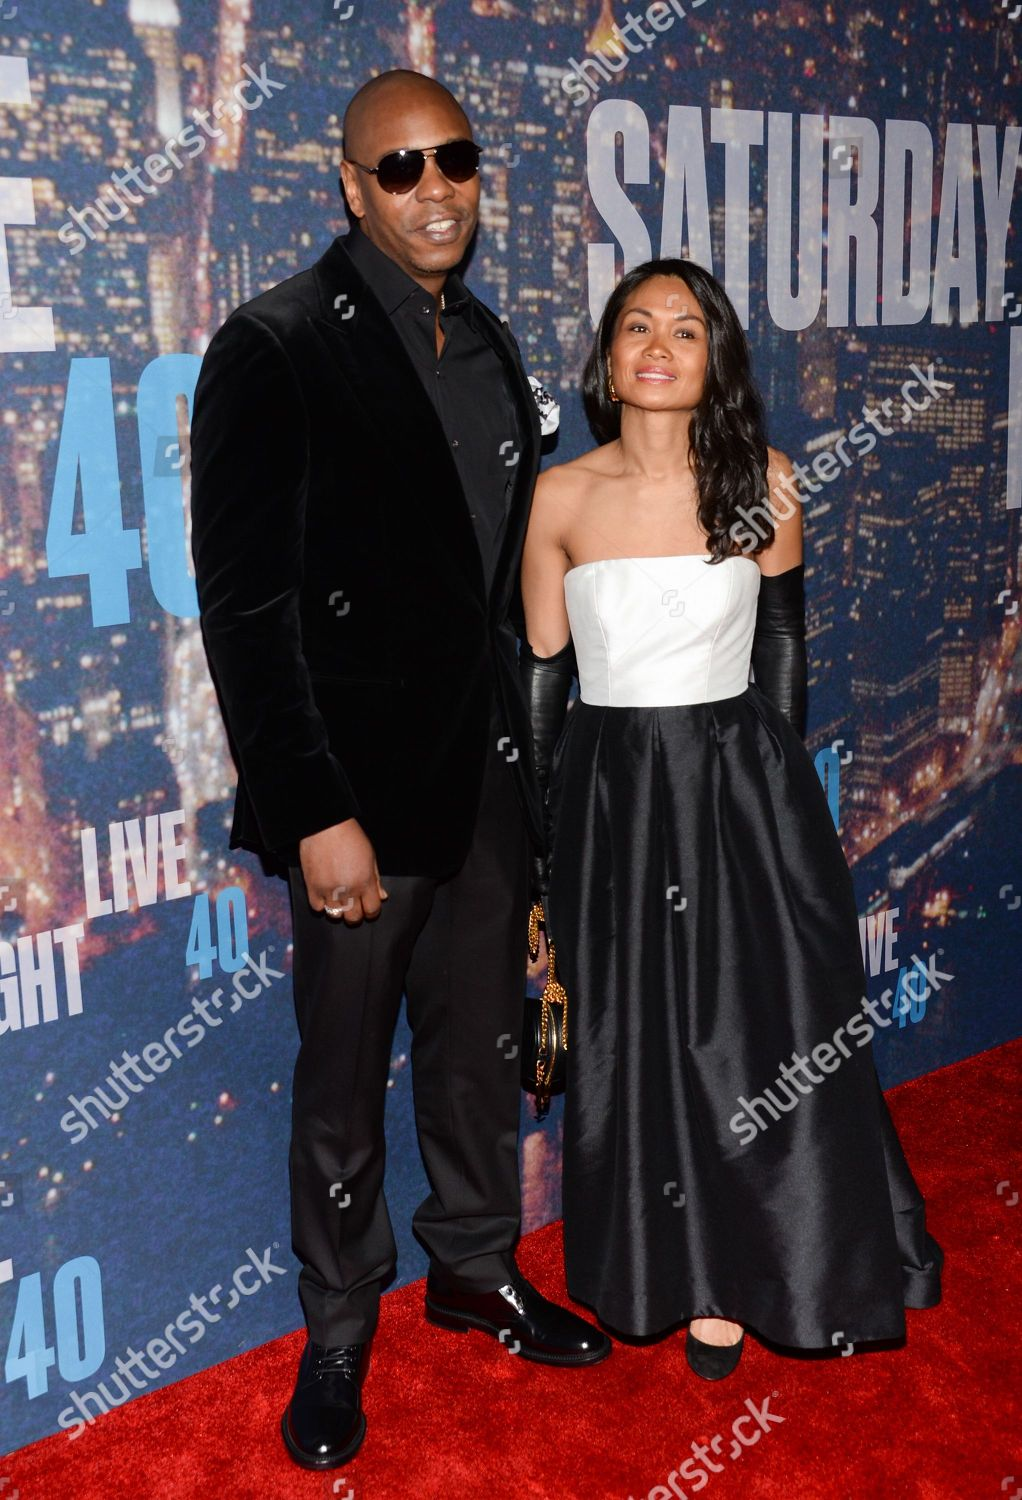 dave chappelle wife elaine chappelle attend snl editorial stock photo stock image shutterstock https www shutterstock com editorial image editorial snl 40th anniversary special arrivals new york usa 15 feb 2015 9194654io